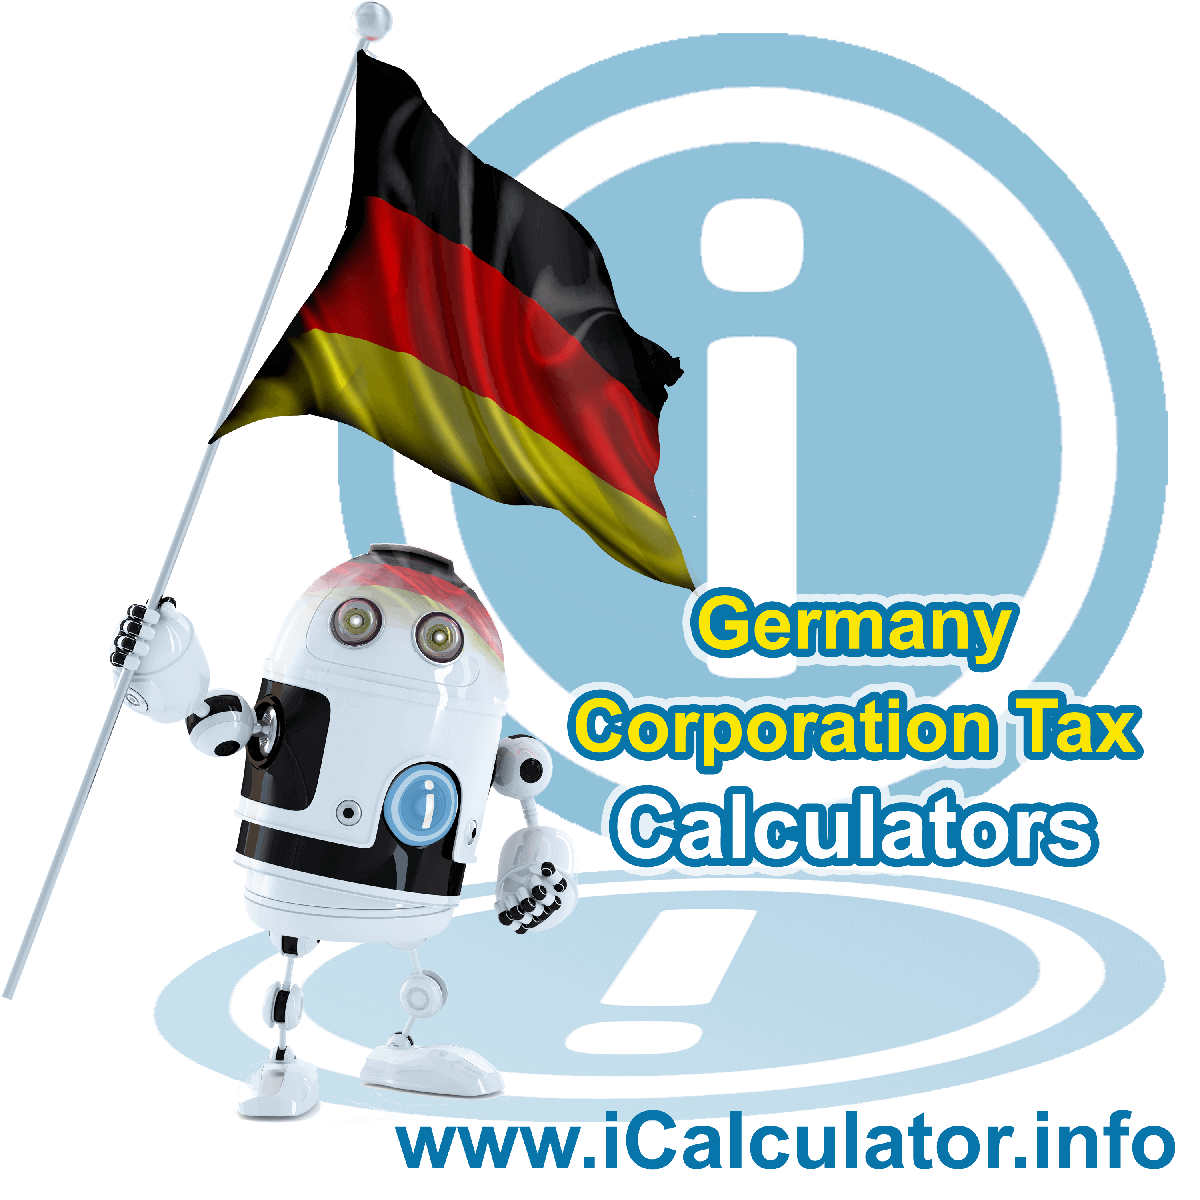 Germany Corporation Tax Calculator. This image shows the Germany flag and information relating to the corporation tax rate formula used for calculating Corporation Tax in Germany using the Germany Corporation Tax Calculator in 2021